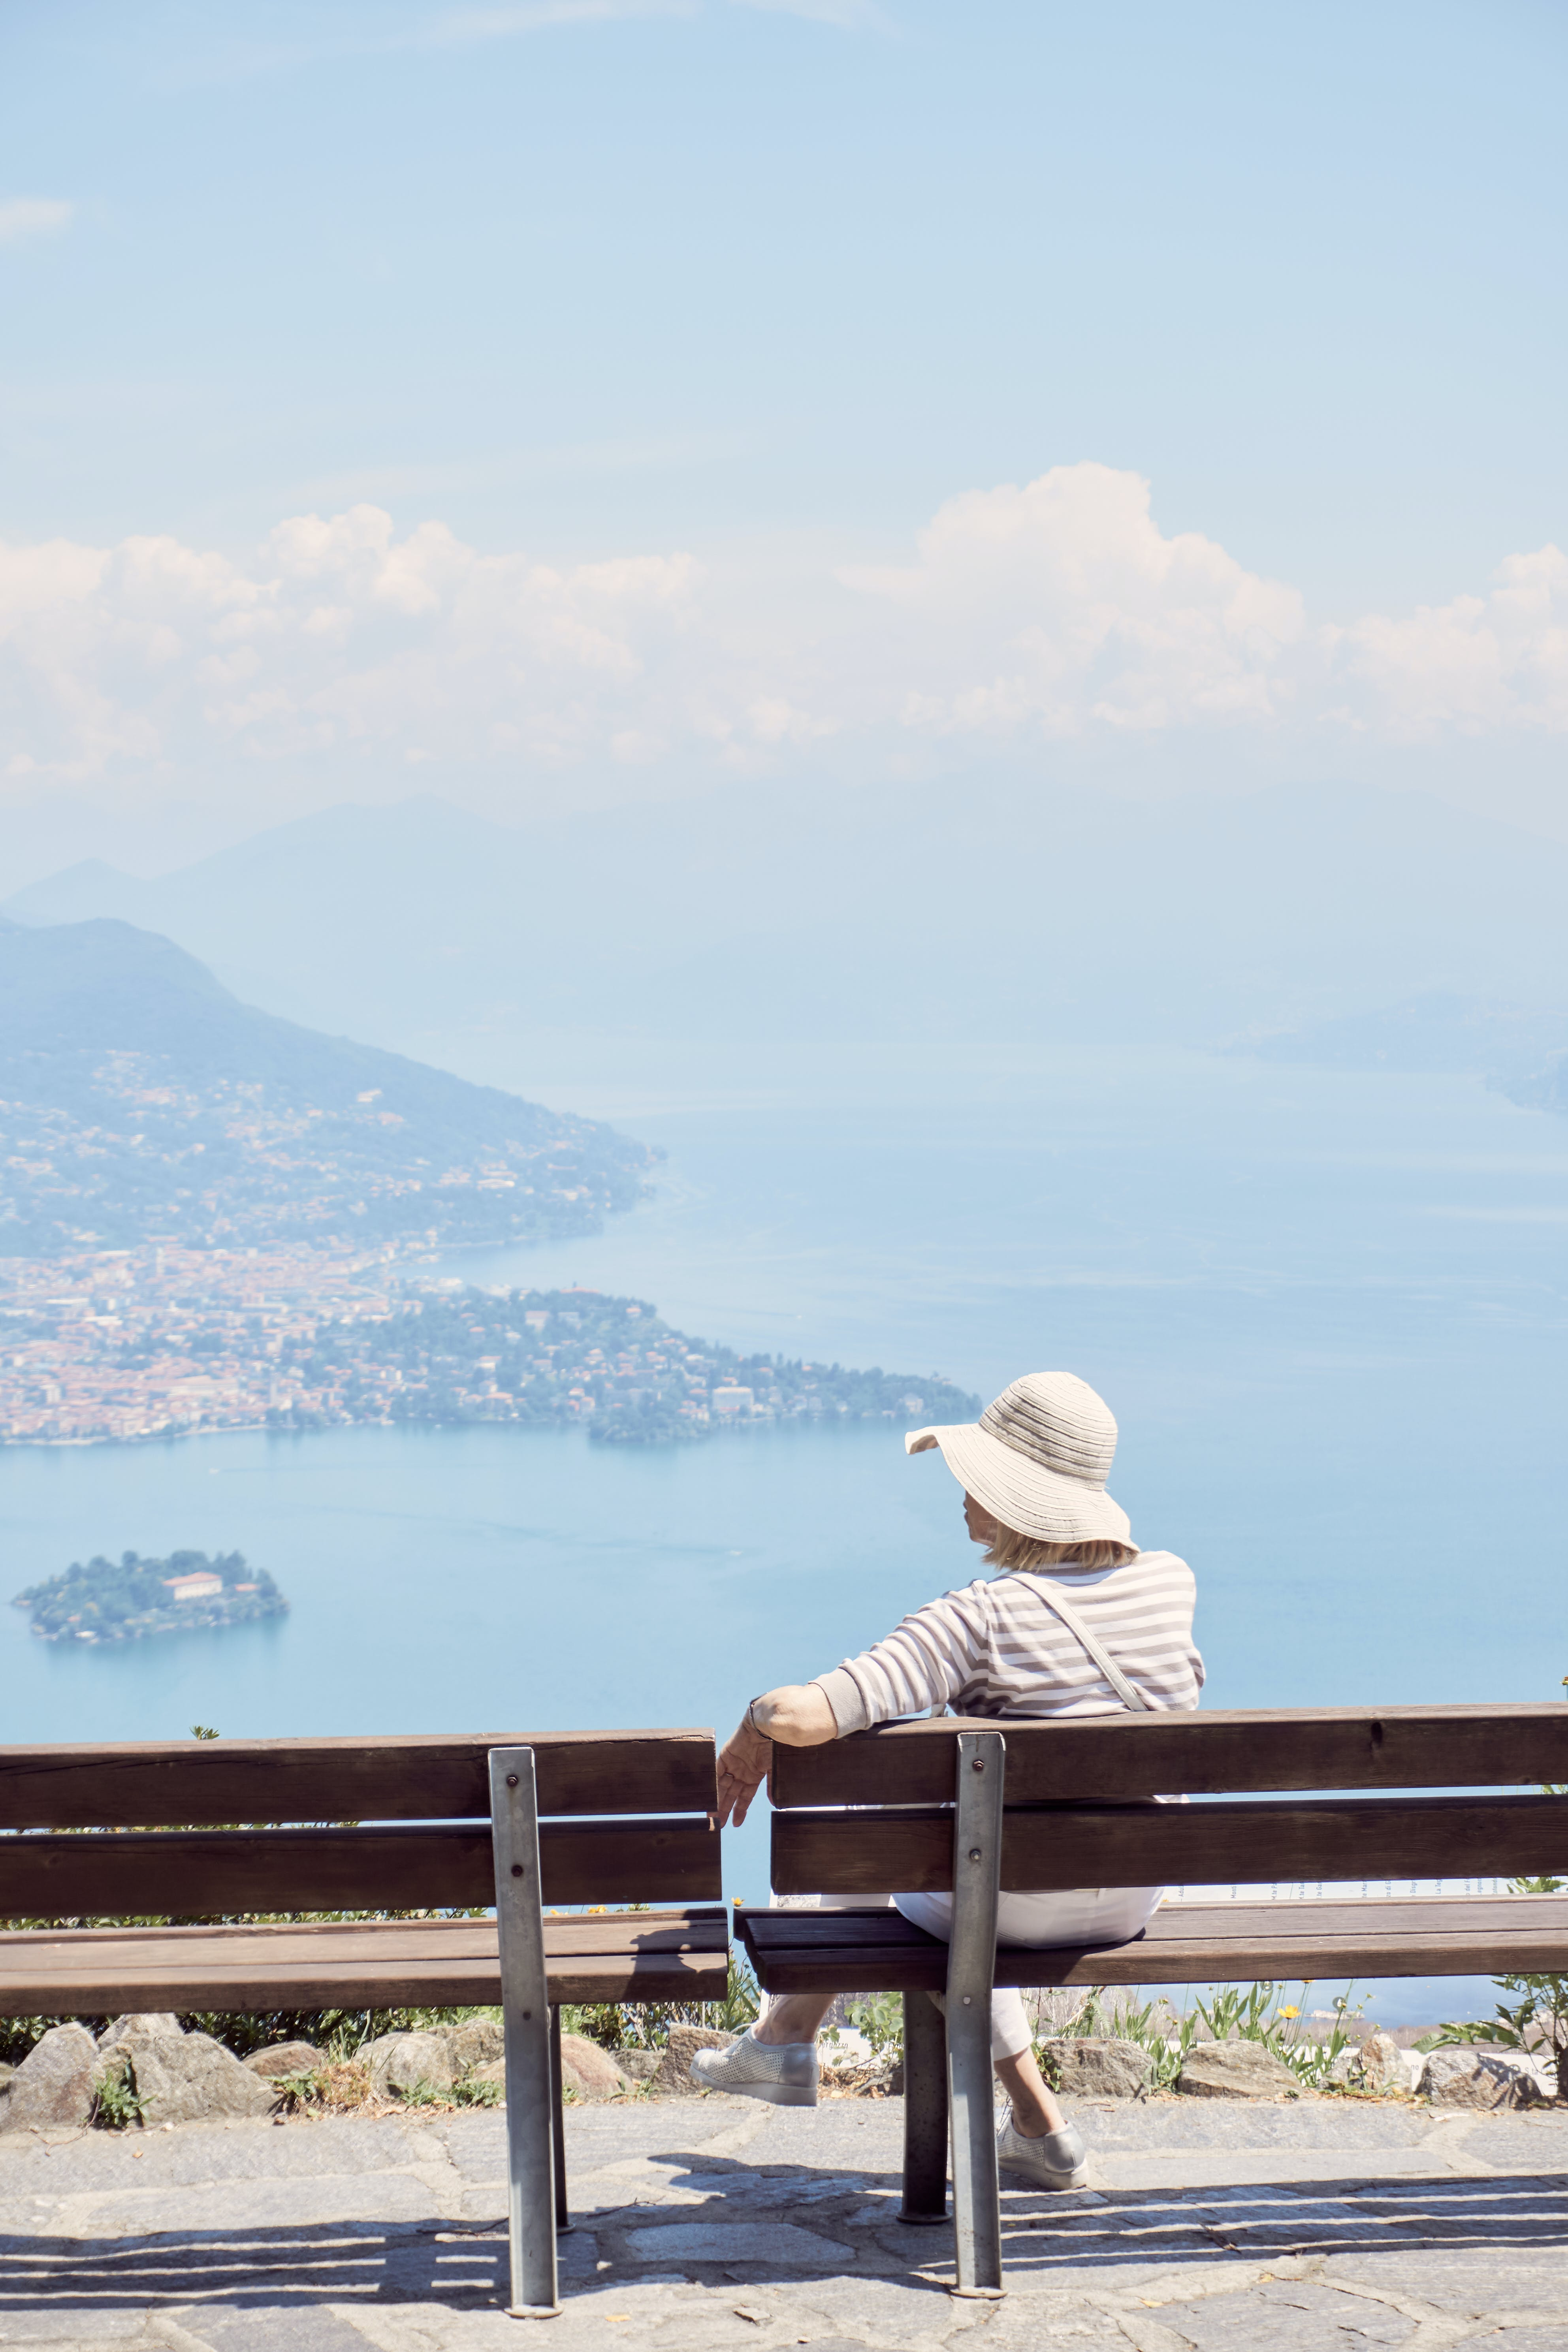 Woman Sitting on Brown Bench Facing Body of Water